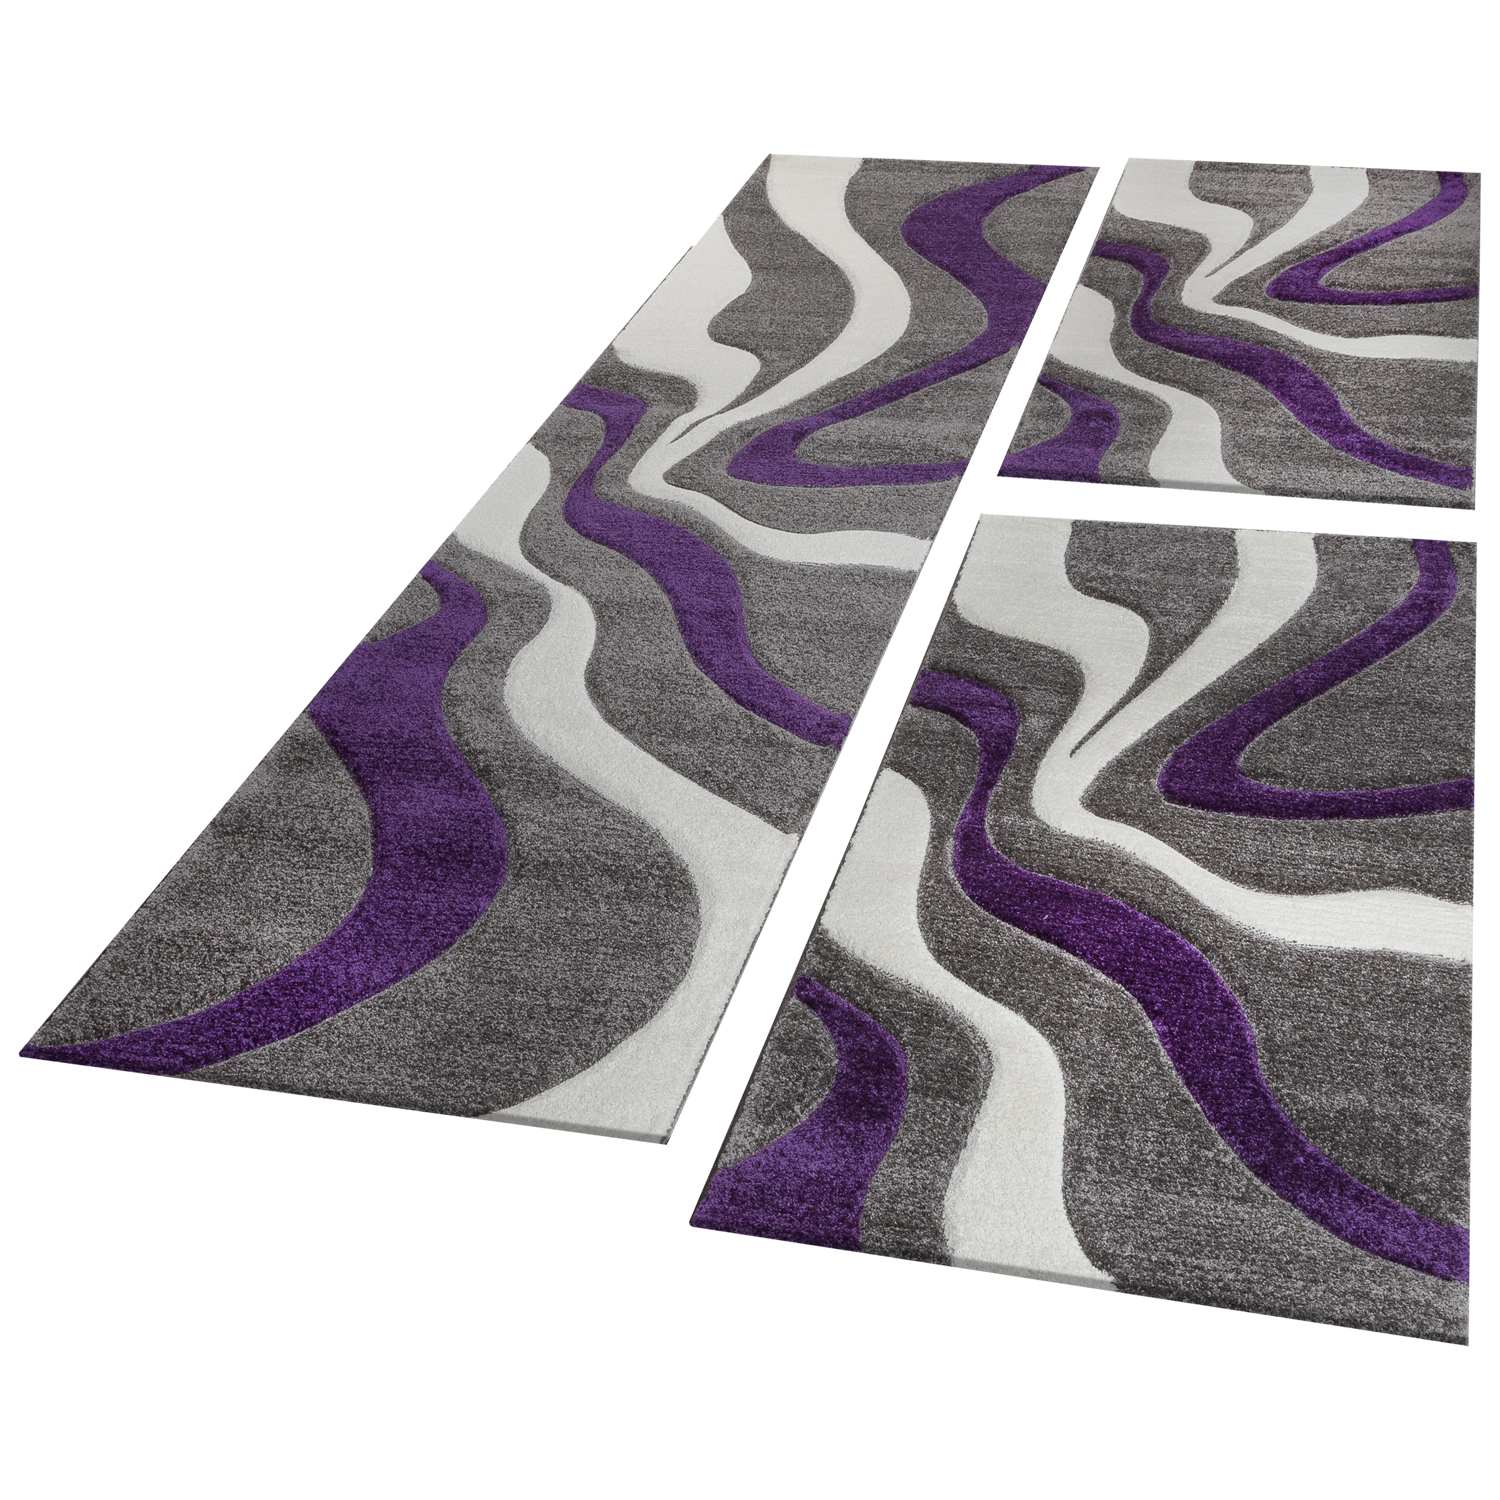 Bed Border Runner Rug Wave Pattern Abstract Purple Grey White Runner Set 3-Piece